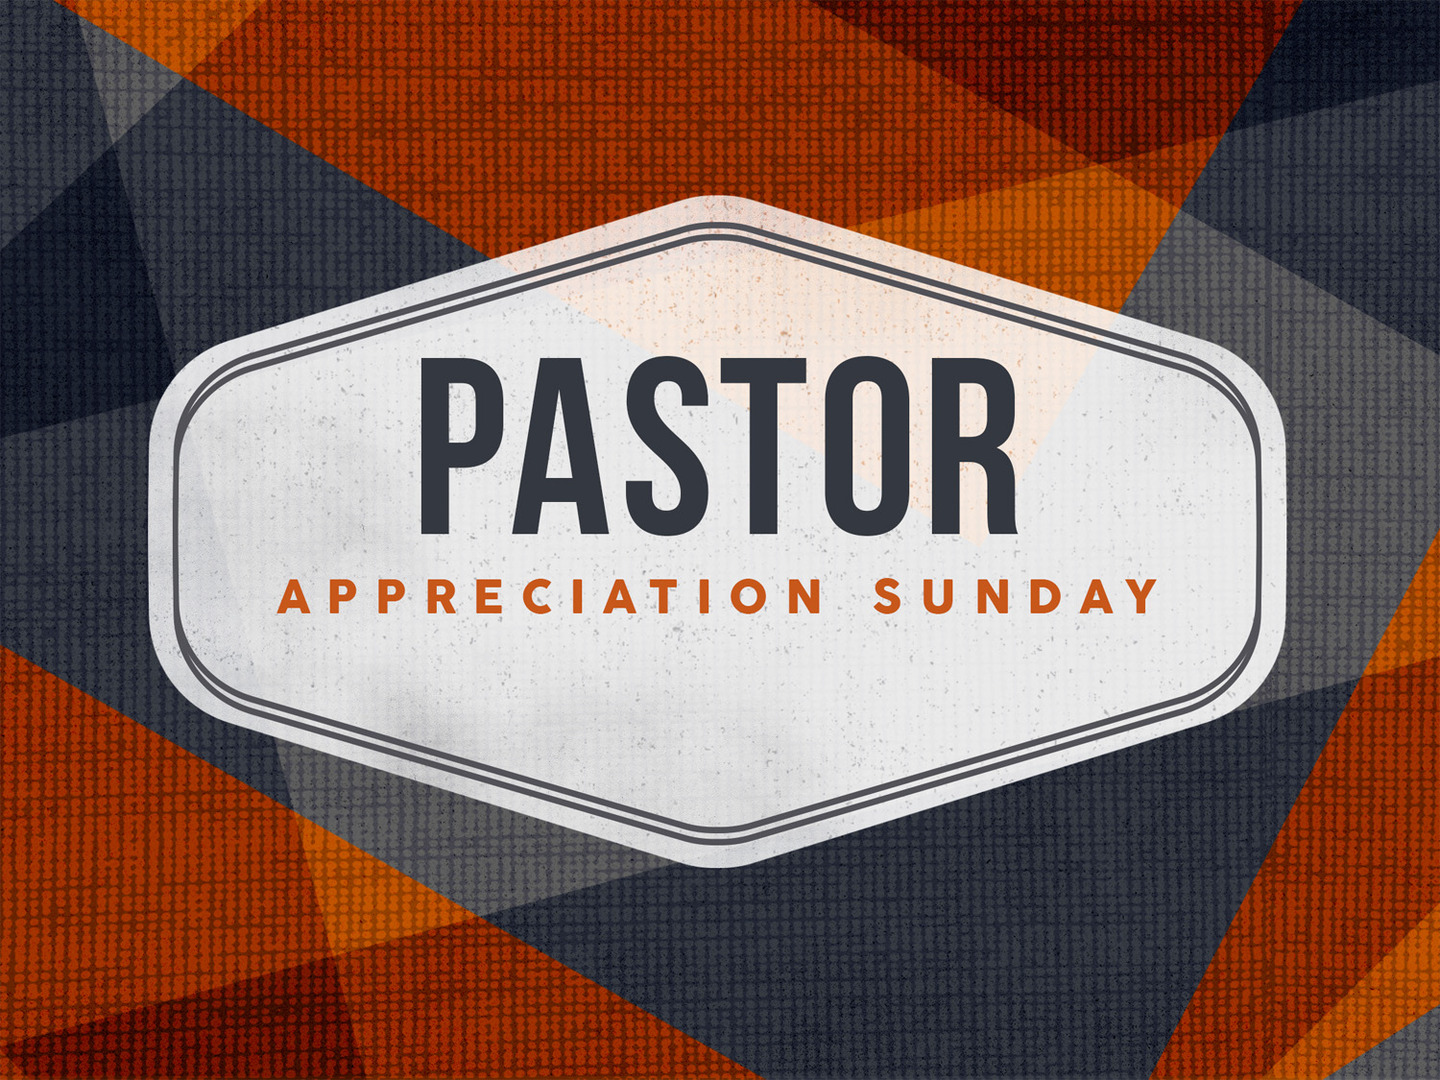 pastor_appreciation_sunday-title-2-still-4x3.jpg